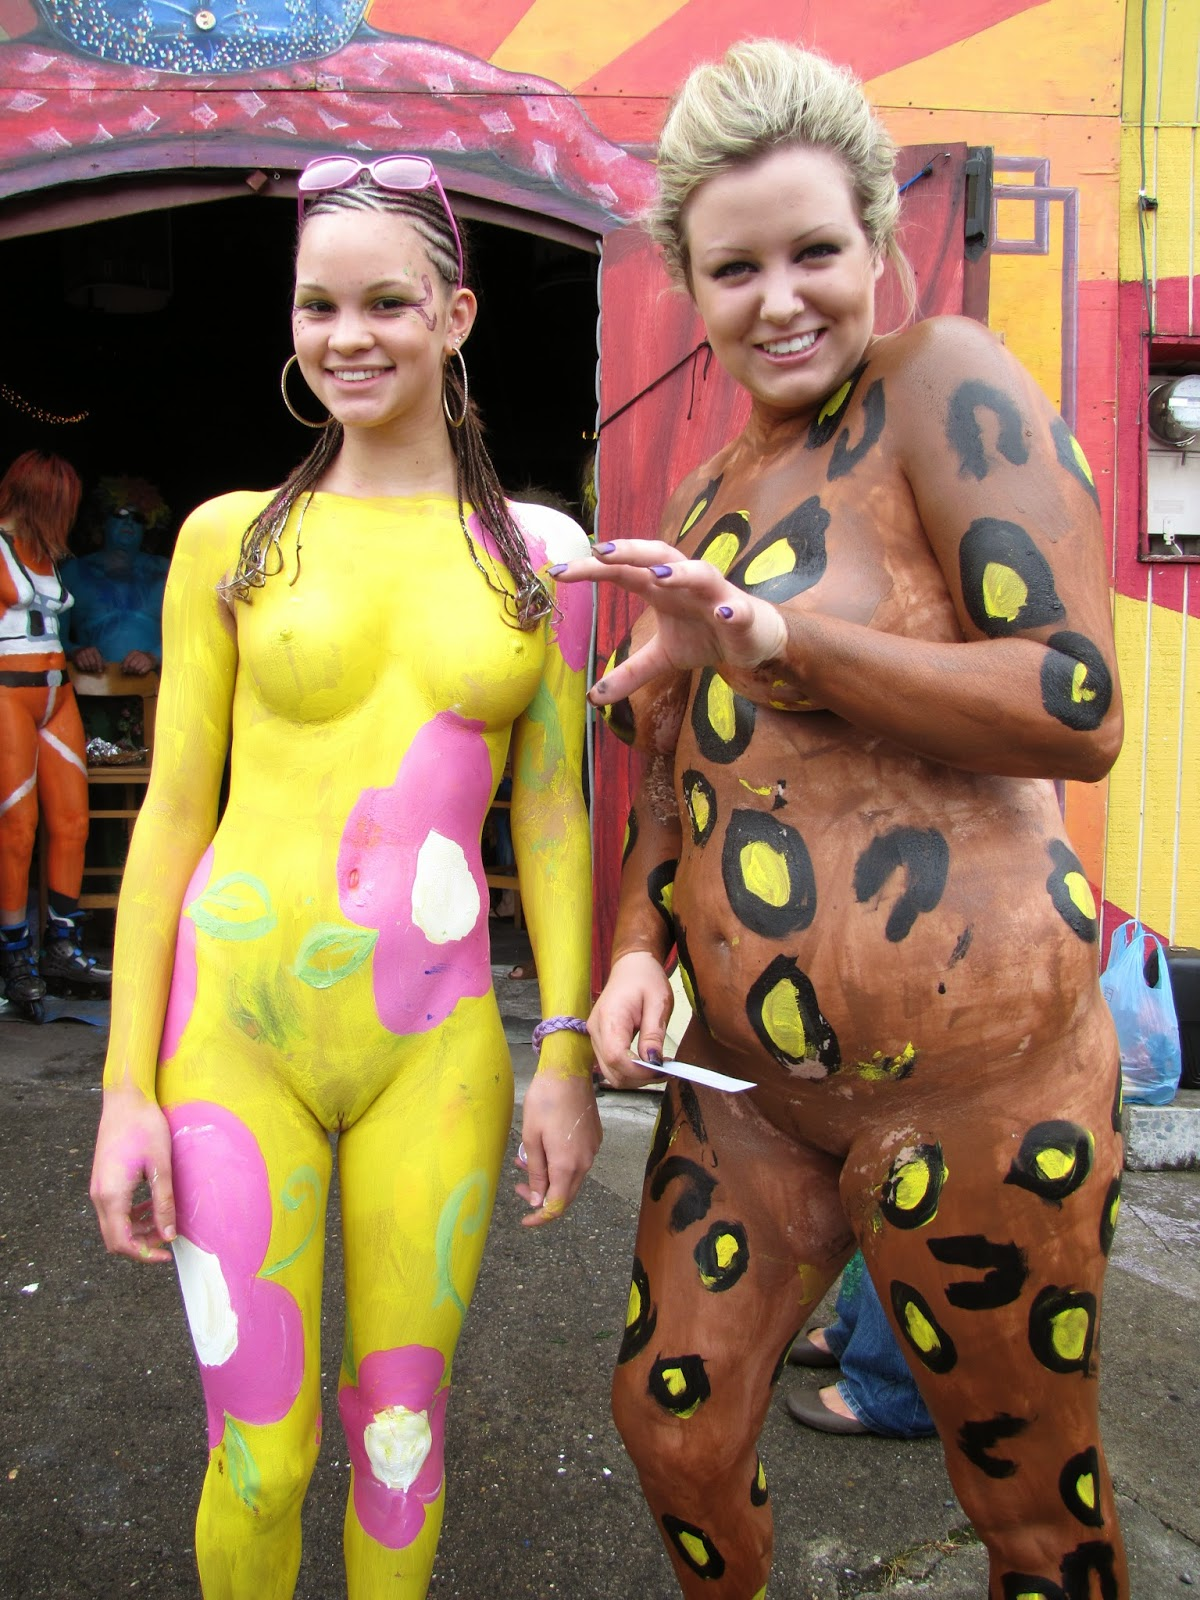 Sorry, that naked girls that are painted look for